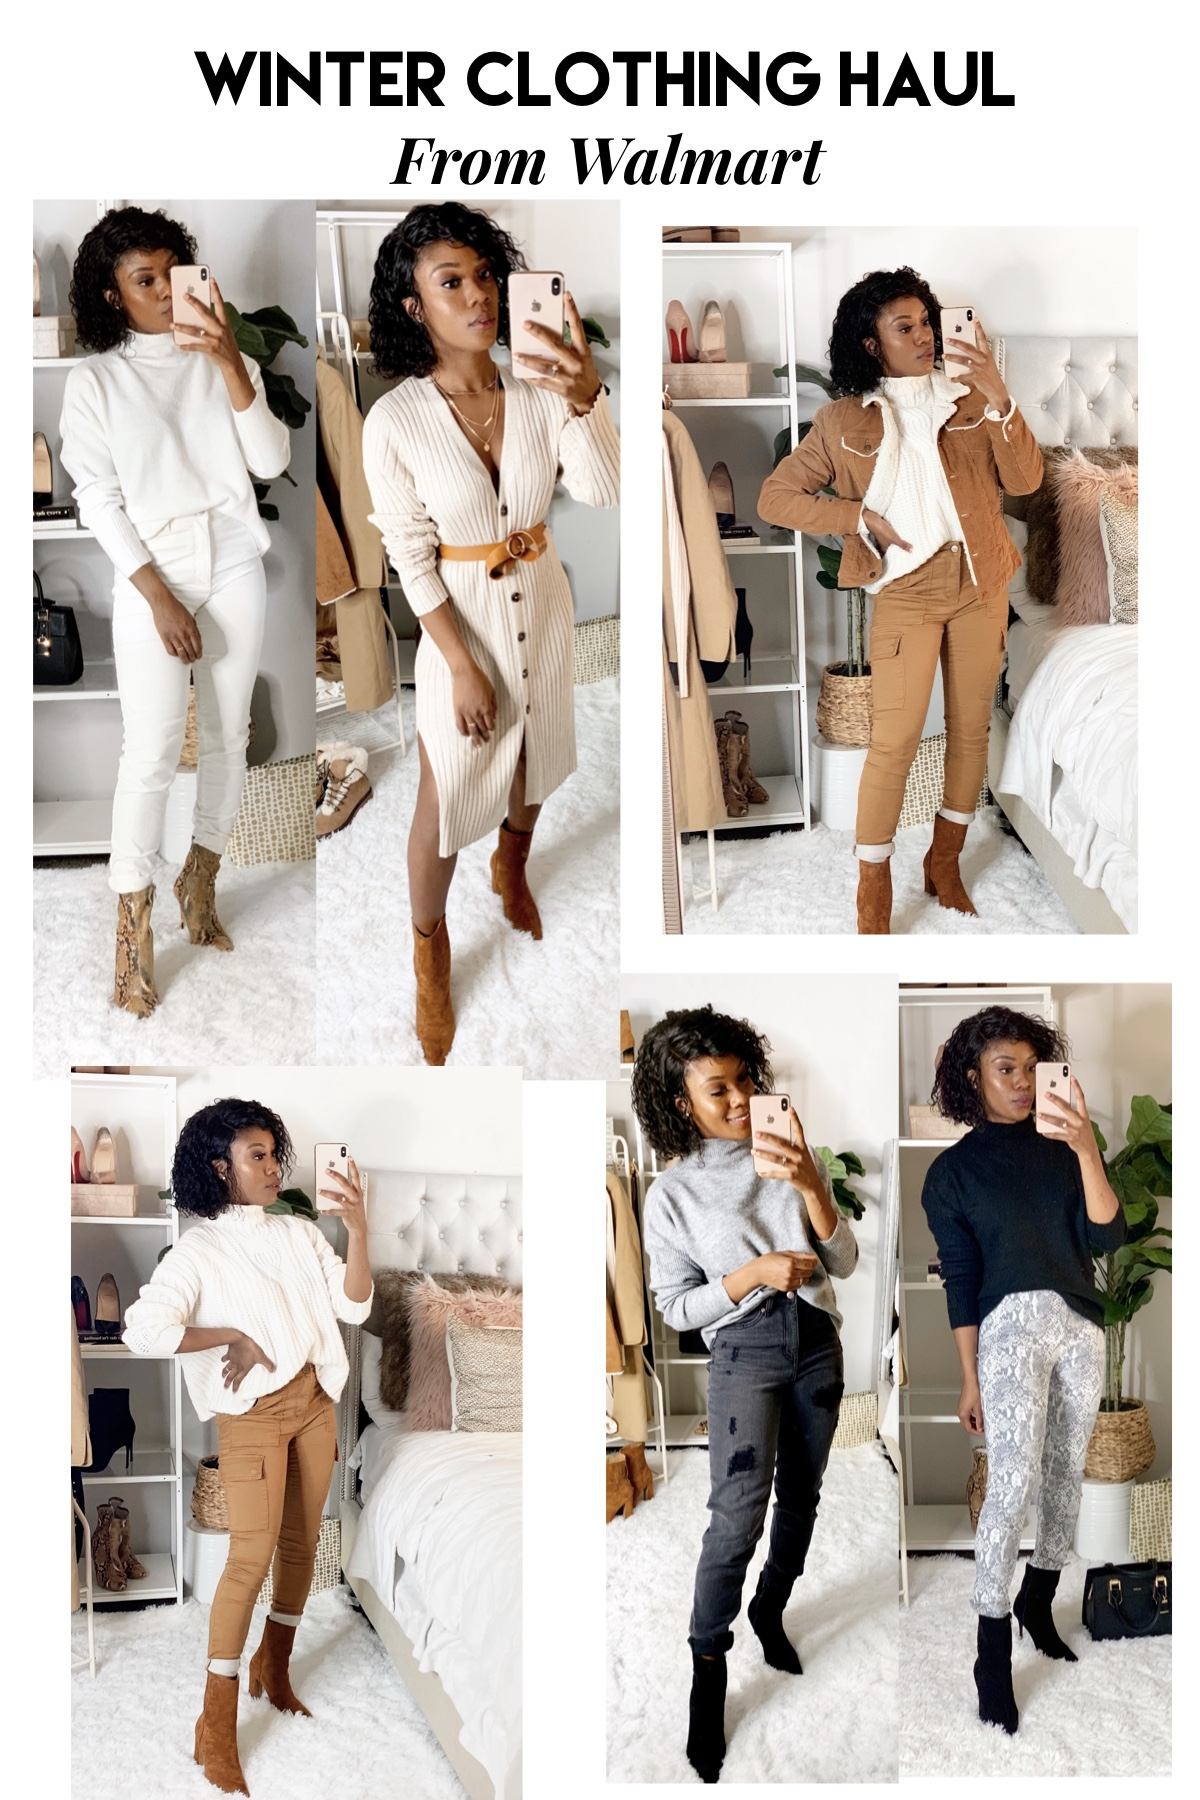 Cute and trendy Fall and Winter clothes from Walmart.